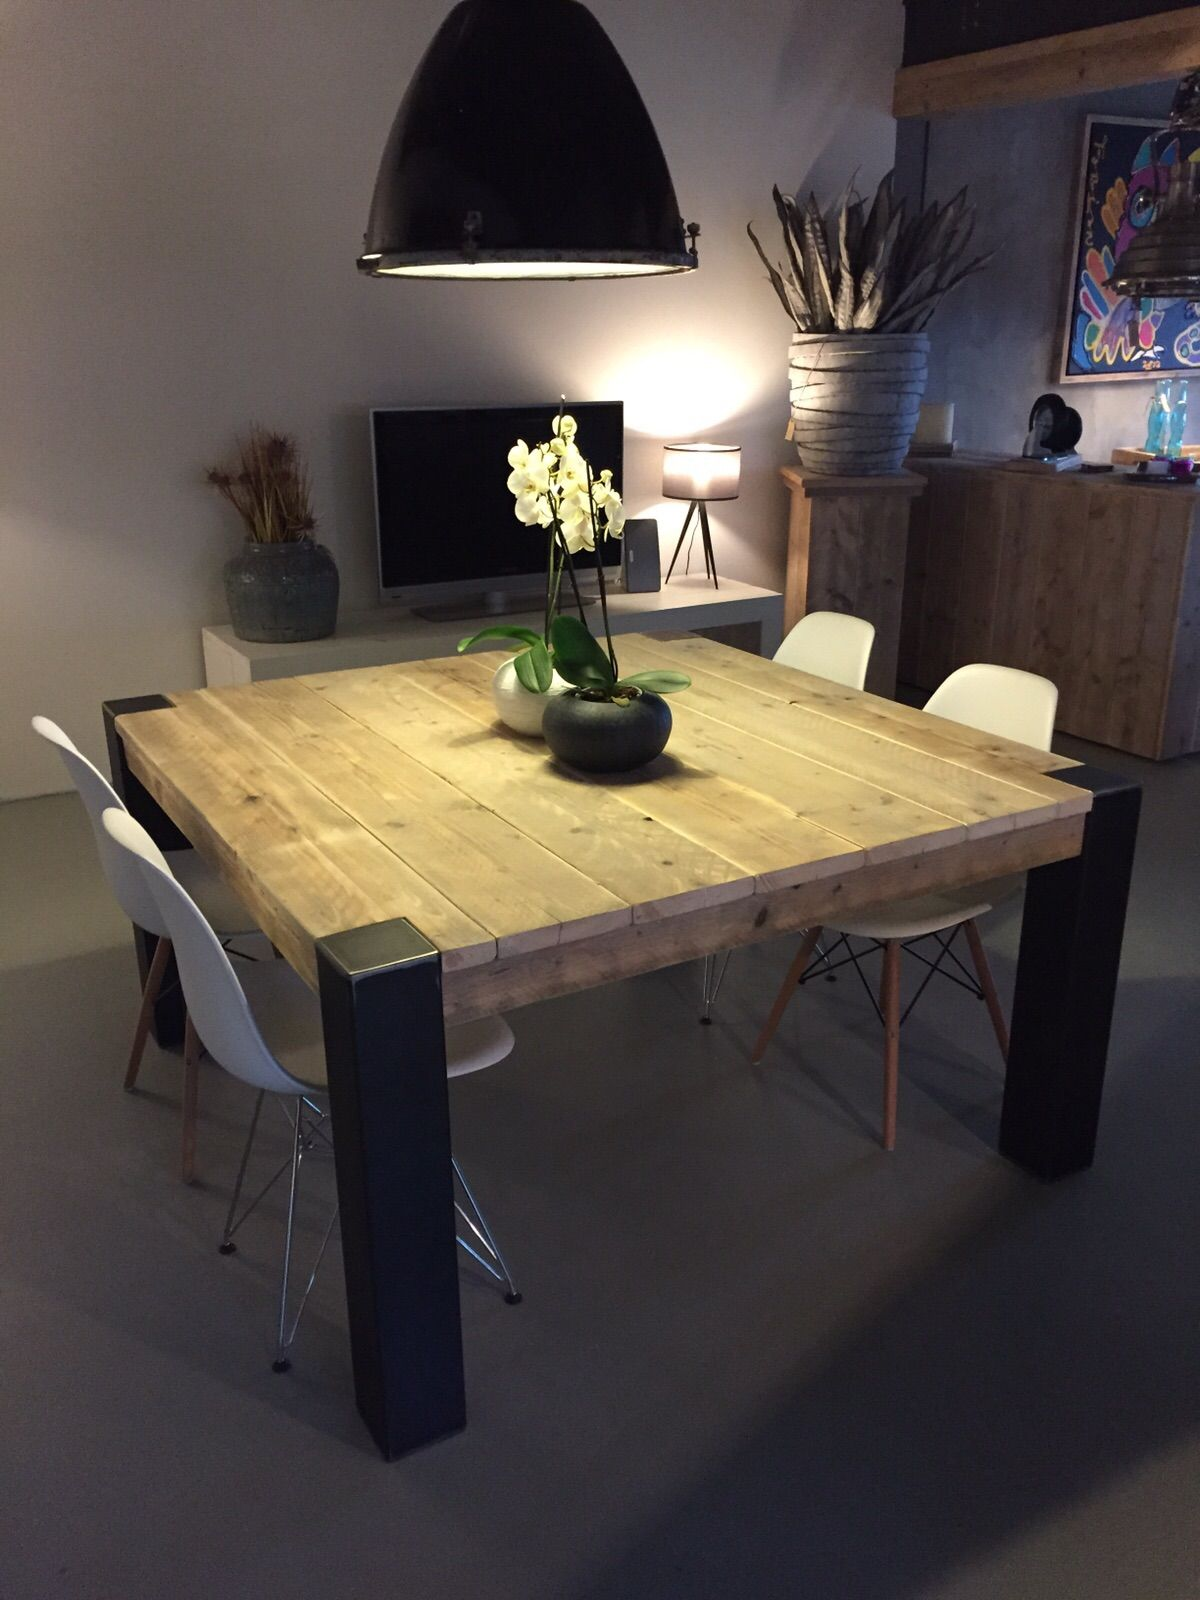 Table carr e avec pieds en m tal brut tables en ancien - Table a manger industrielle ...